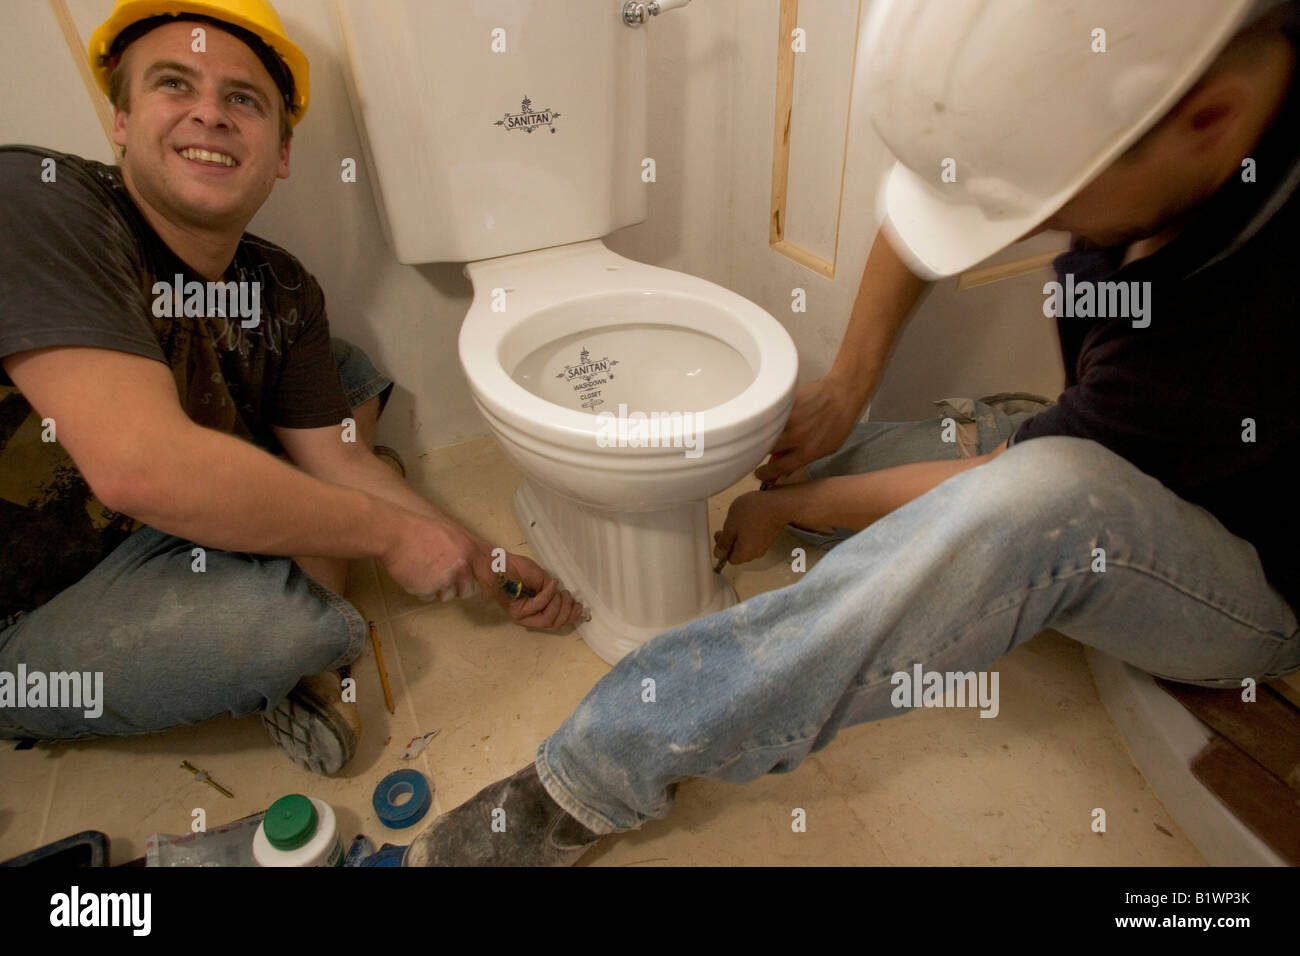 Install A Toilet Two Builders Install A Toilet Stock Photo 18391175 Alamy